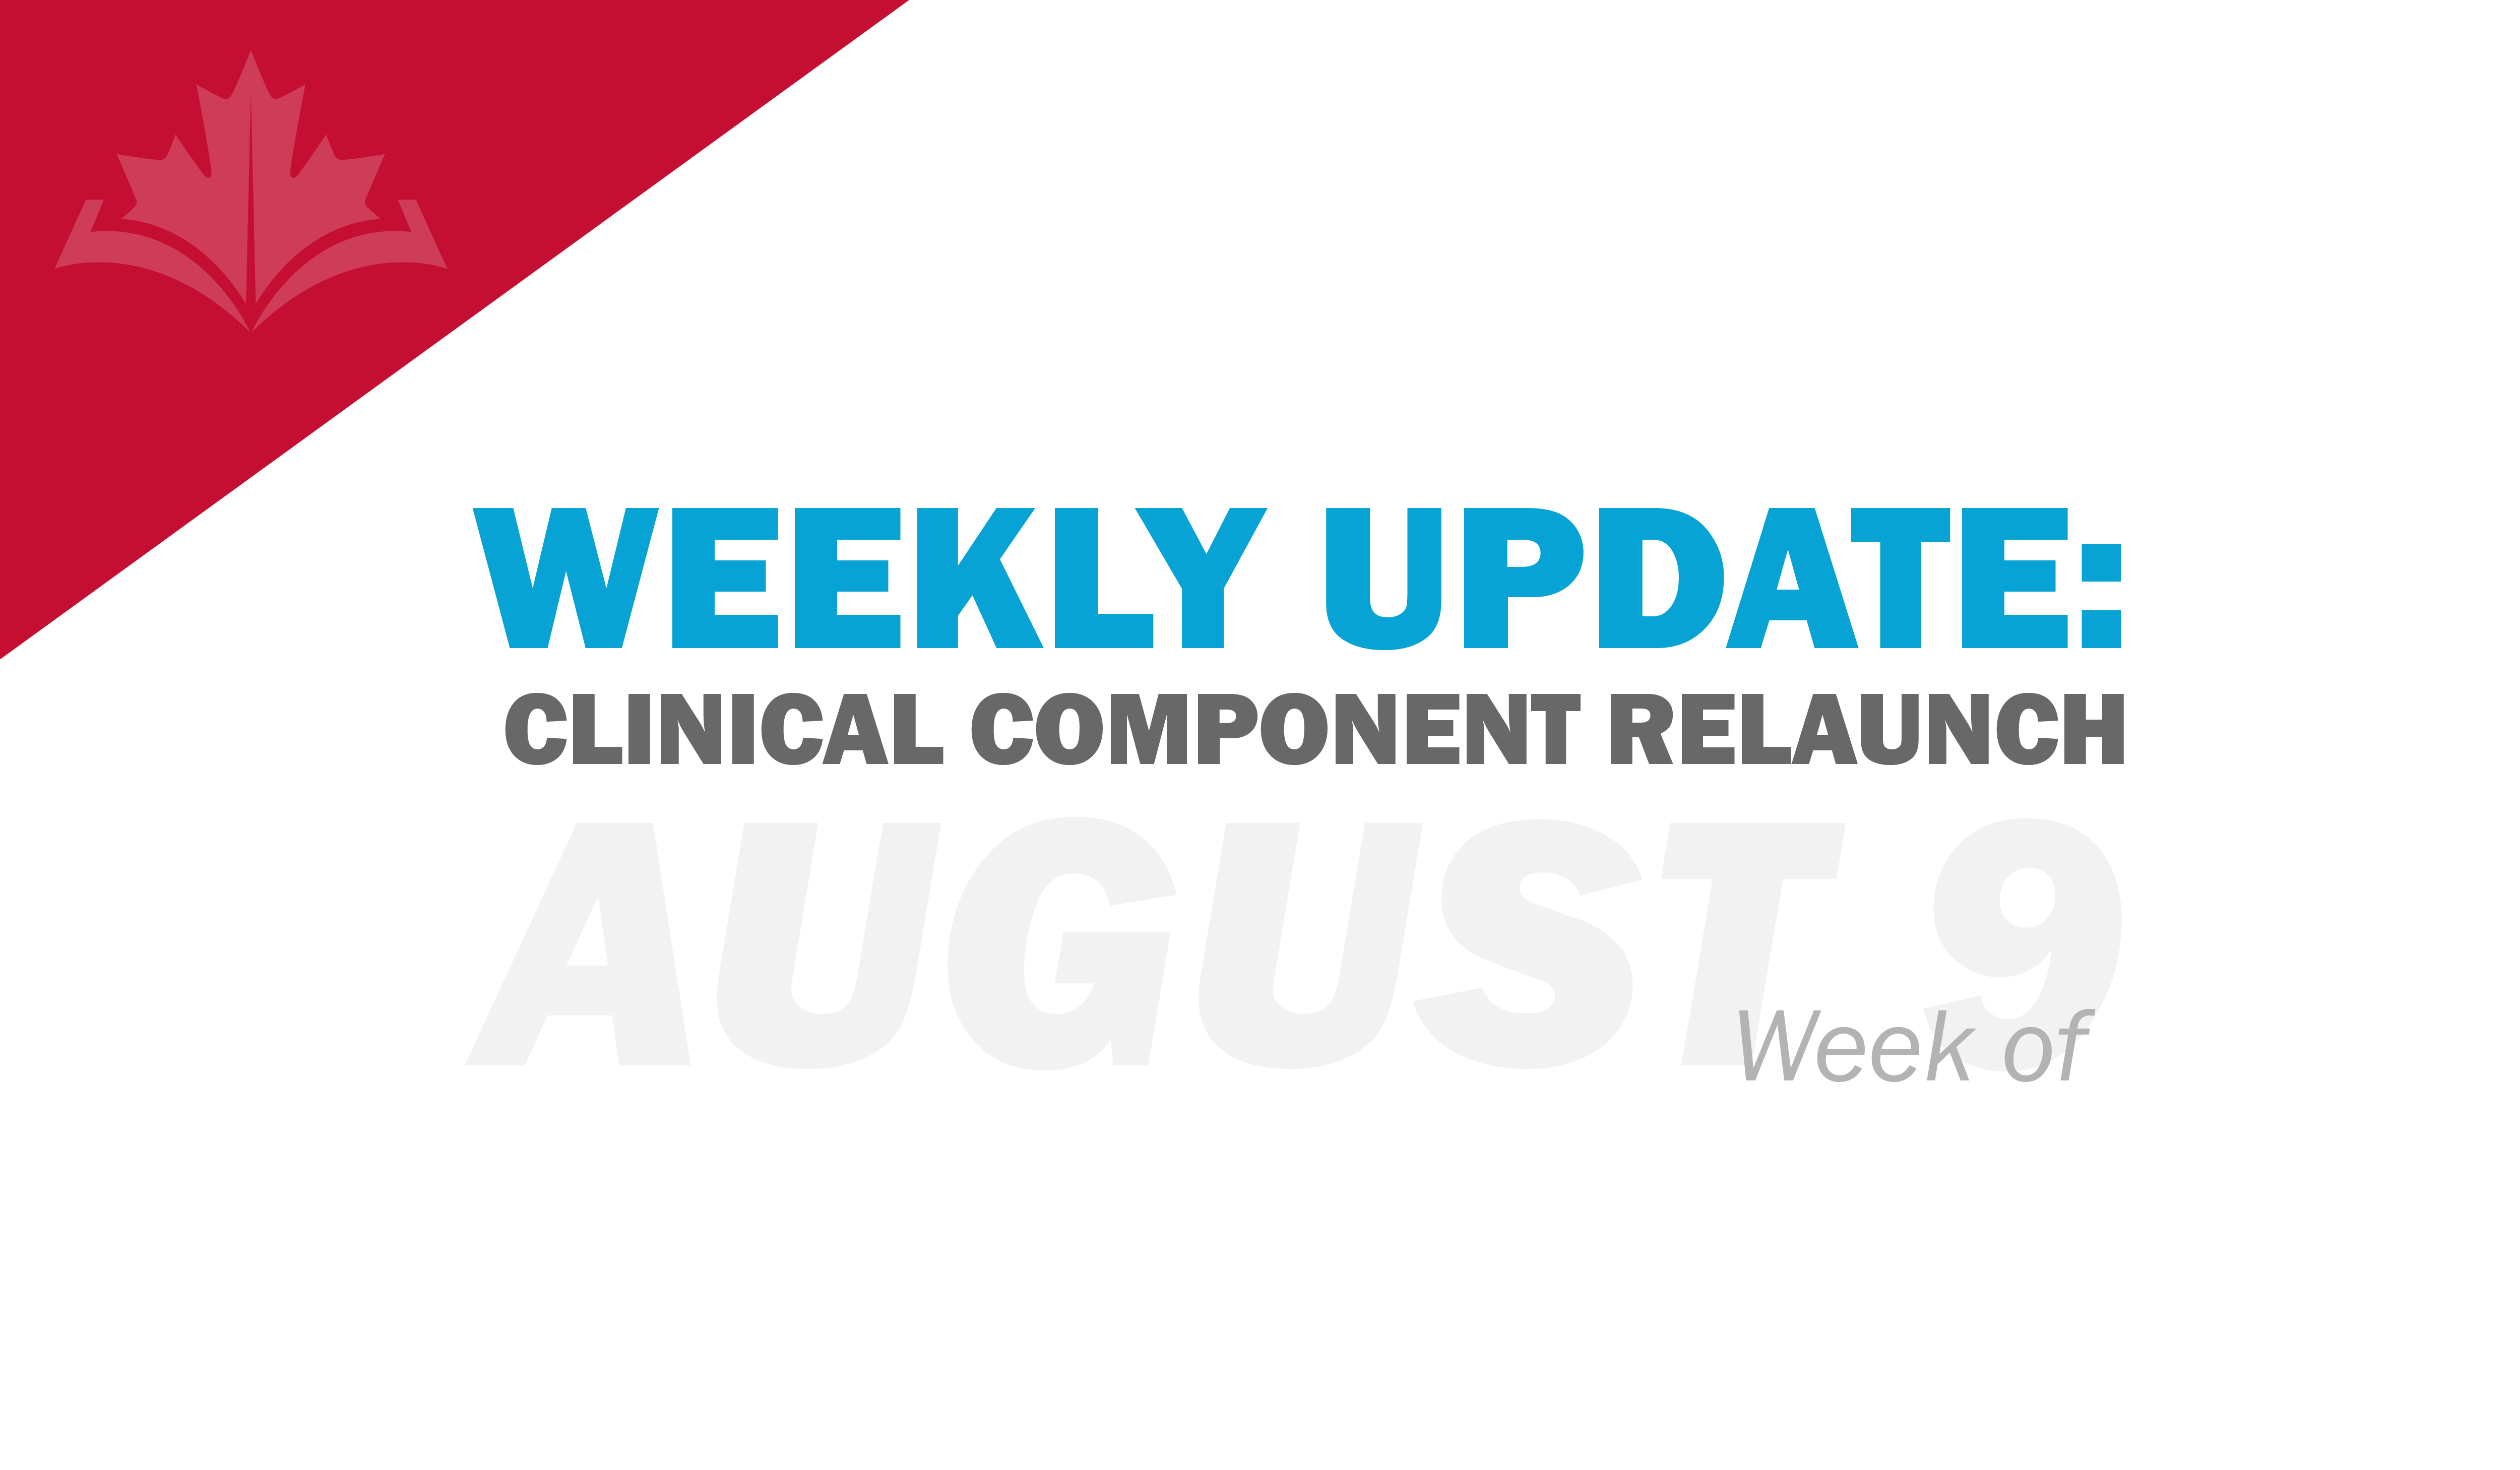 Clinical Component Update for the Week of August 9